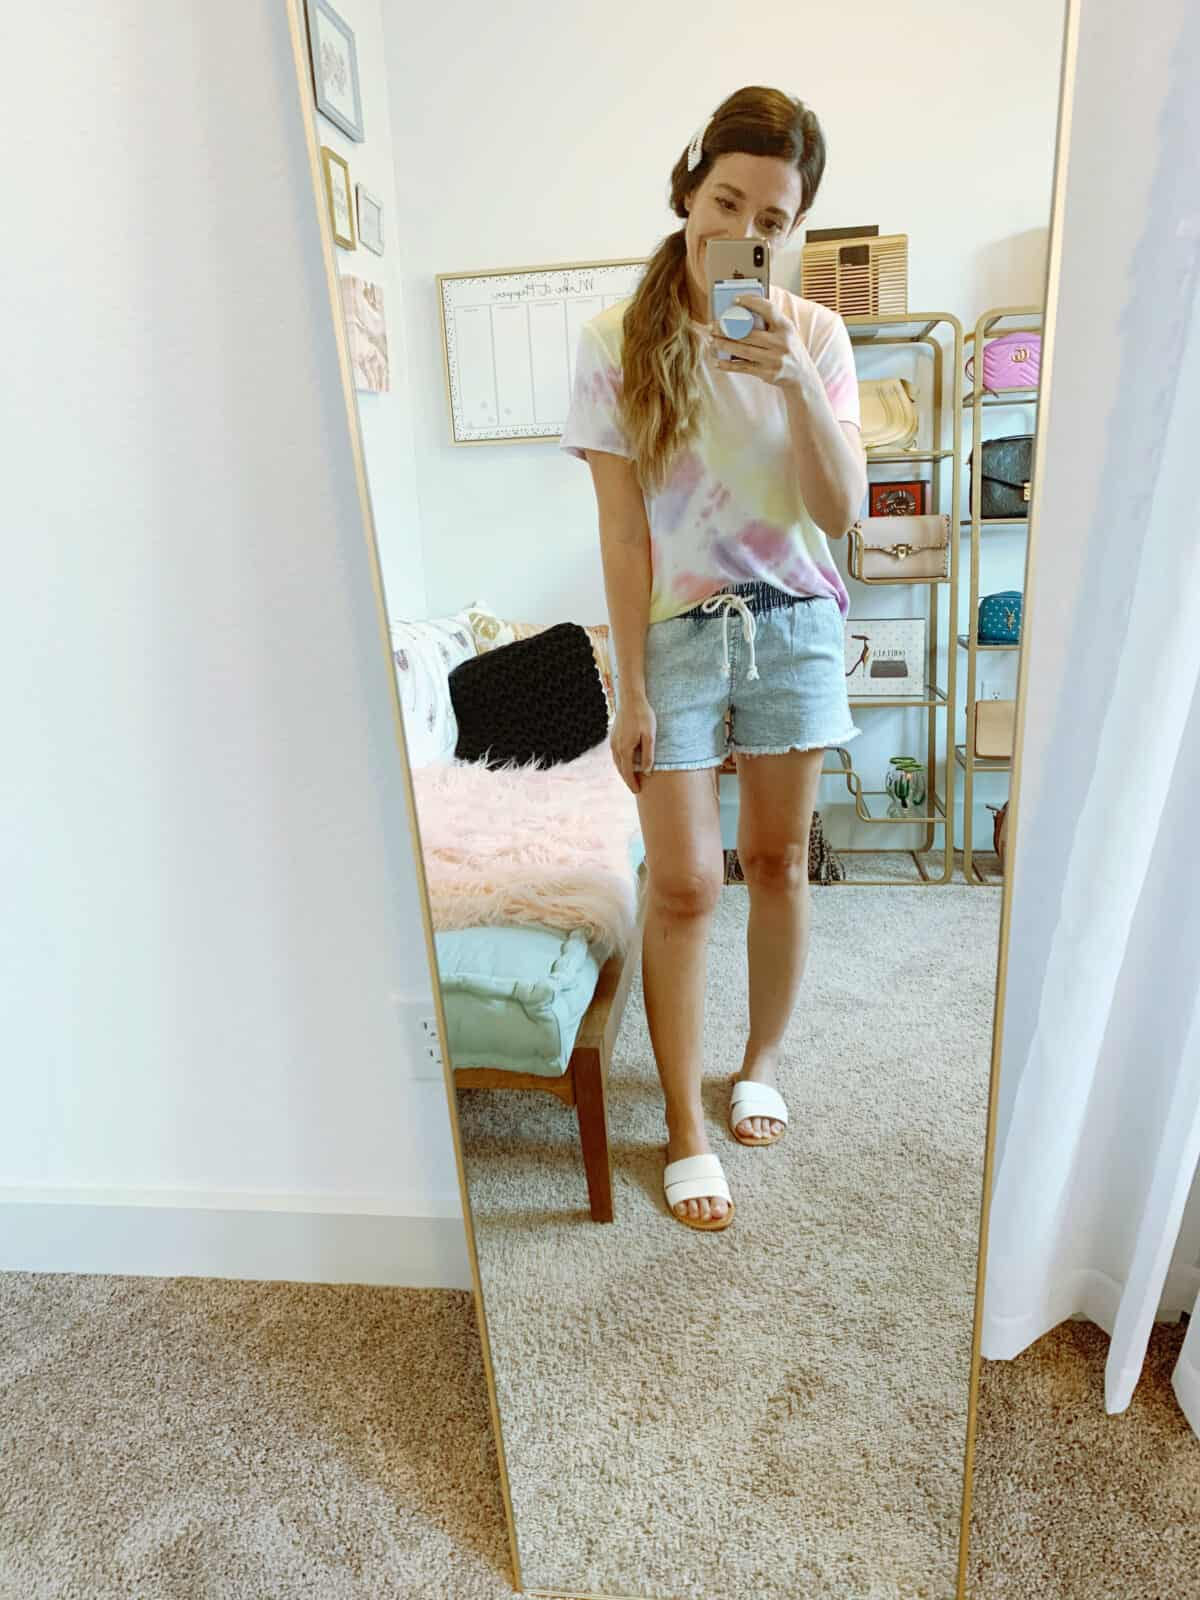 TIE DYE TOP and jean shorts